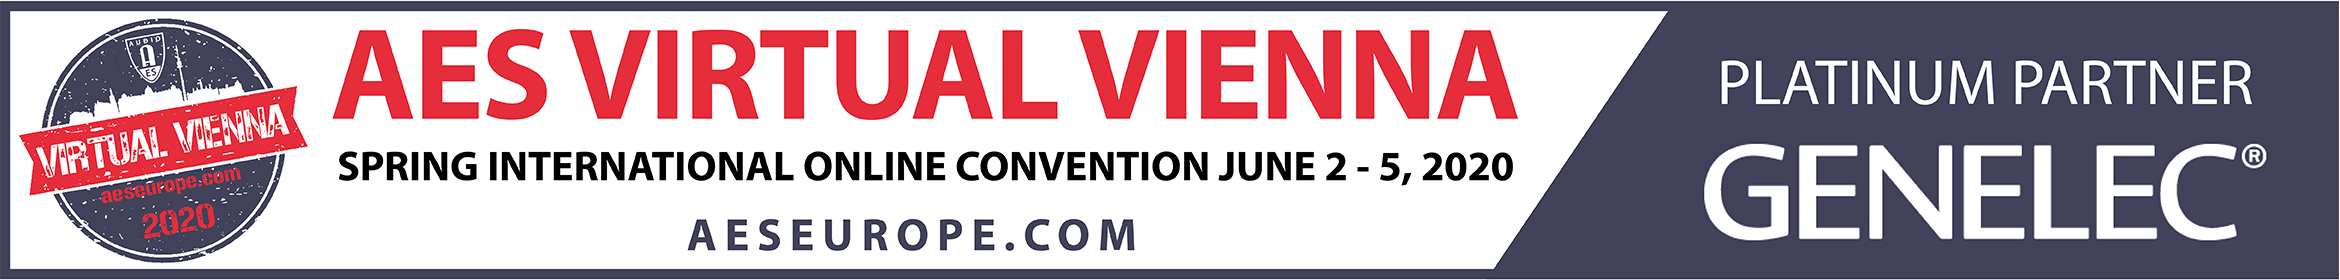 AES Virtual Vienna Convention Main banner